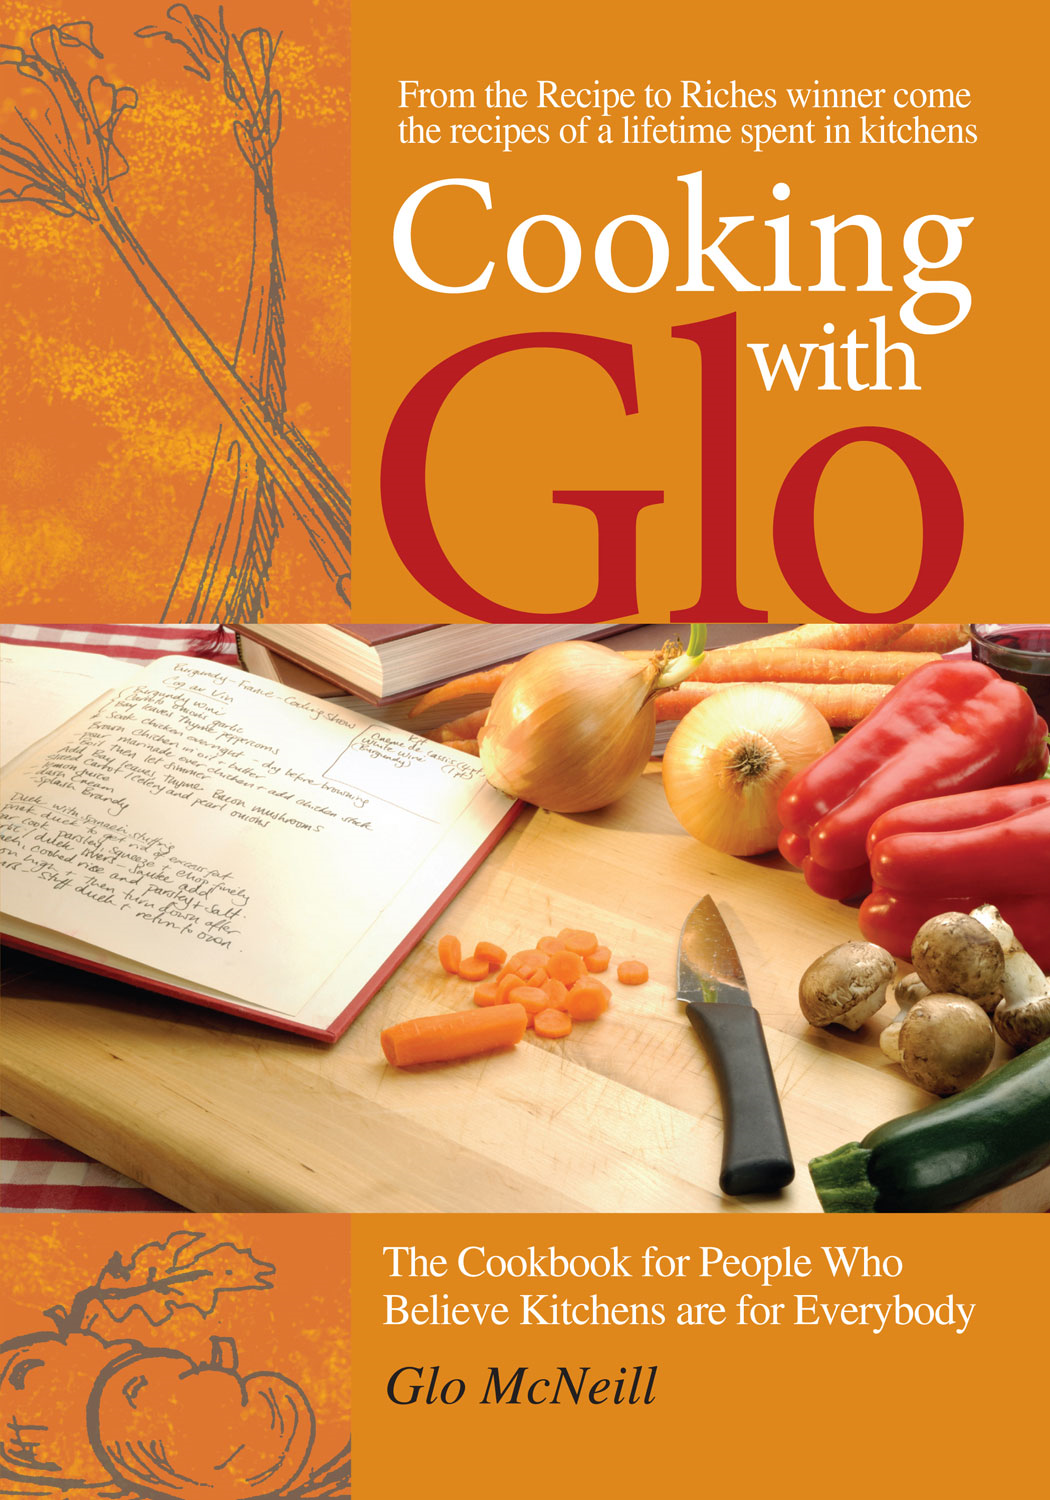 Cooking with Glo: The Cookbook for People Who Believe Kitchens are for Everybody